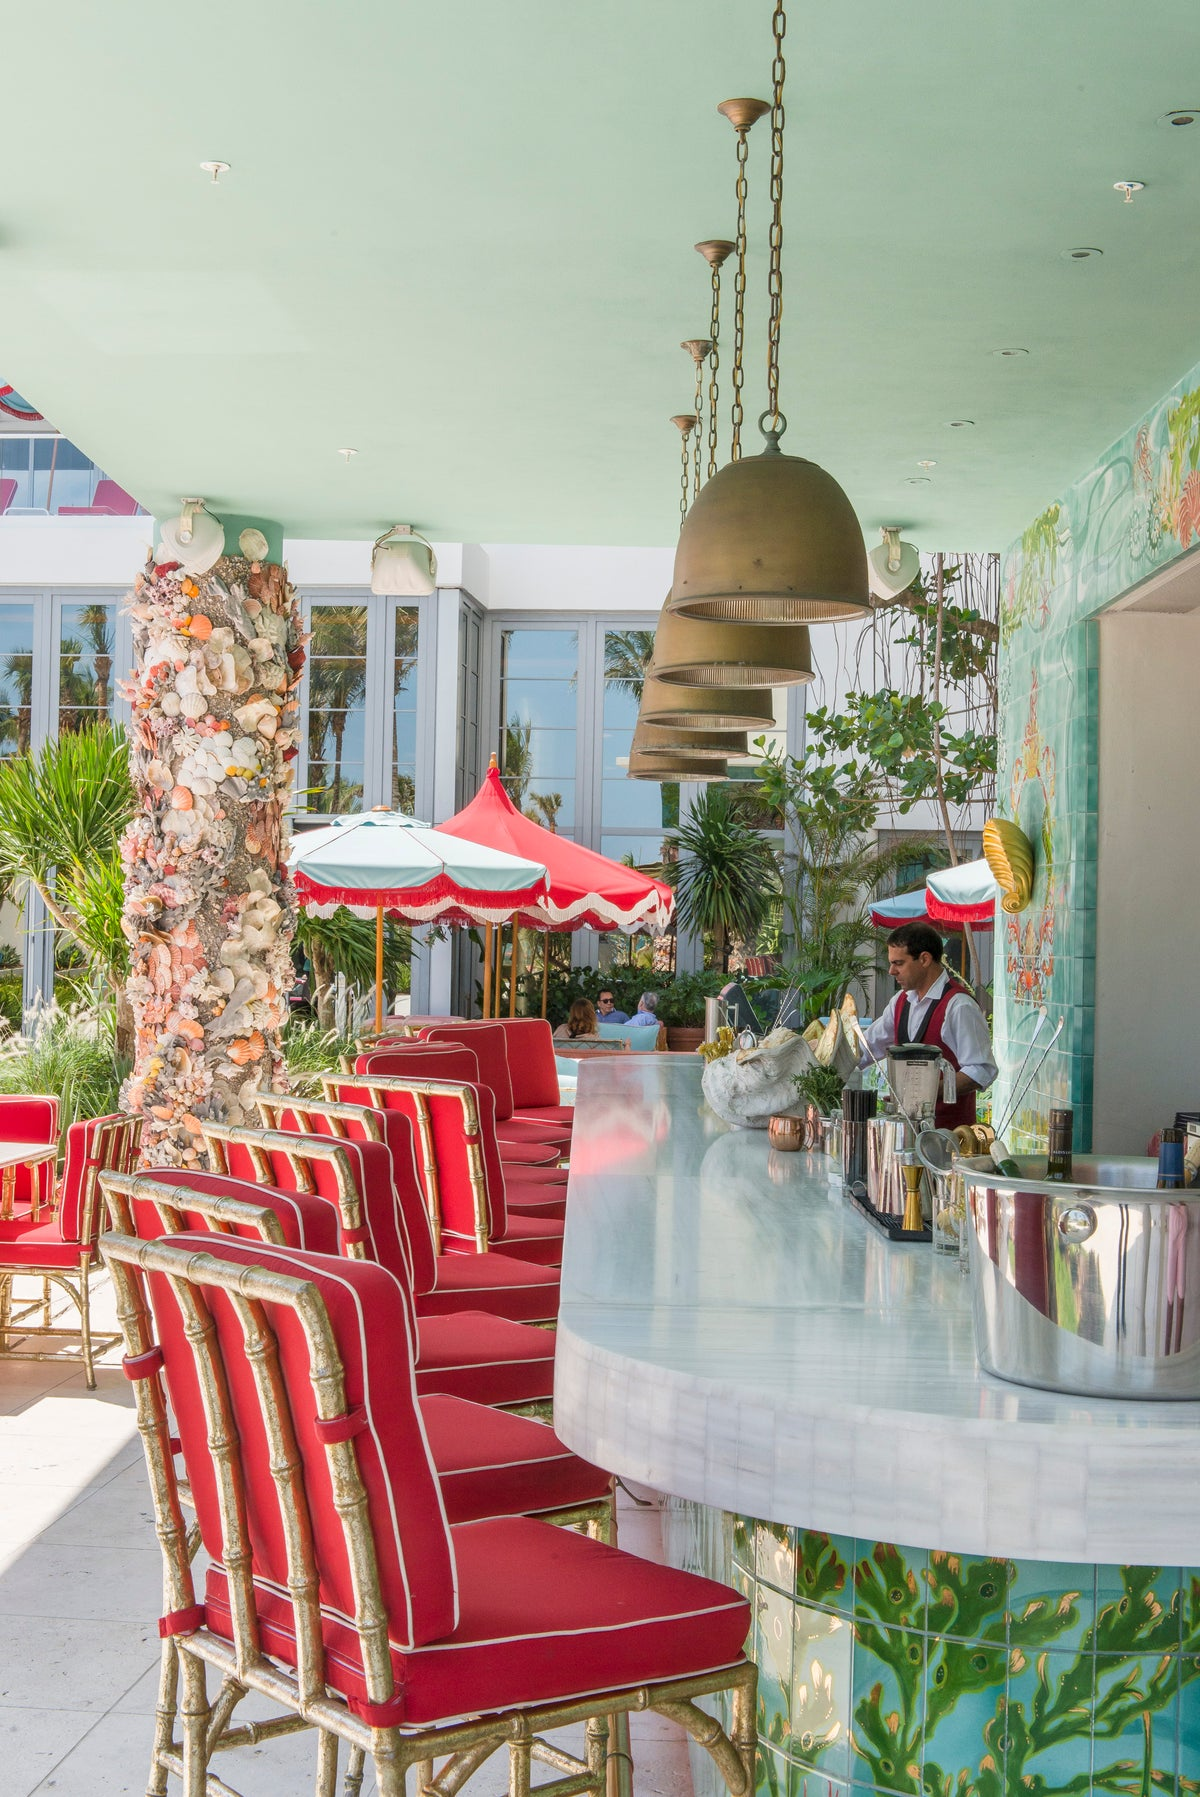 Faena Hotel, Miami Beach - white stone hotel bar with red tiki bar stools and a bartender making a drink